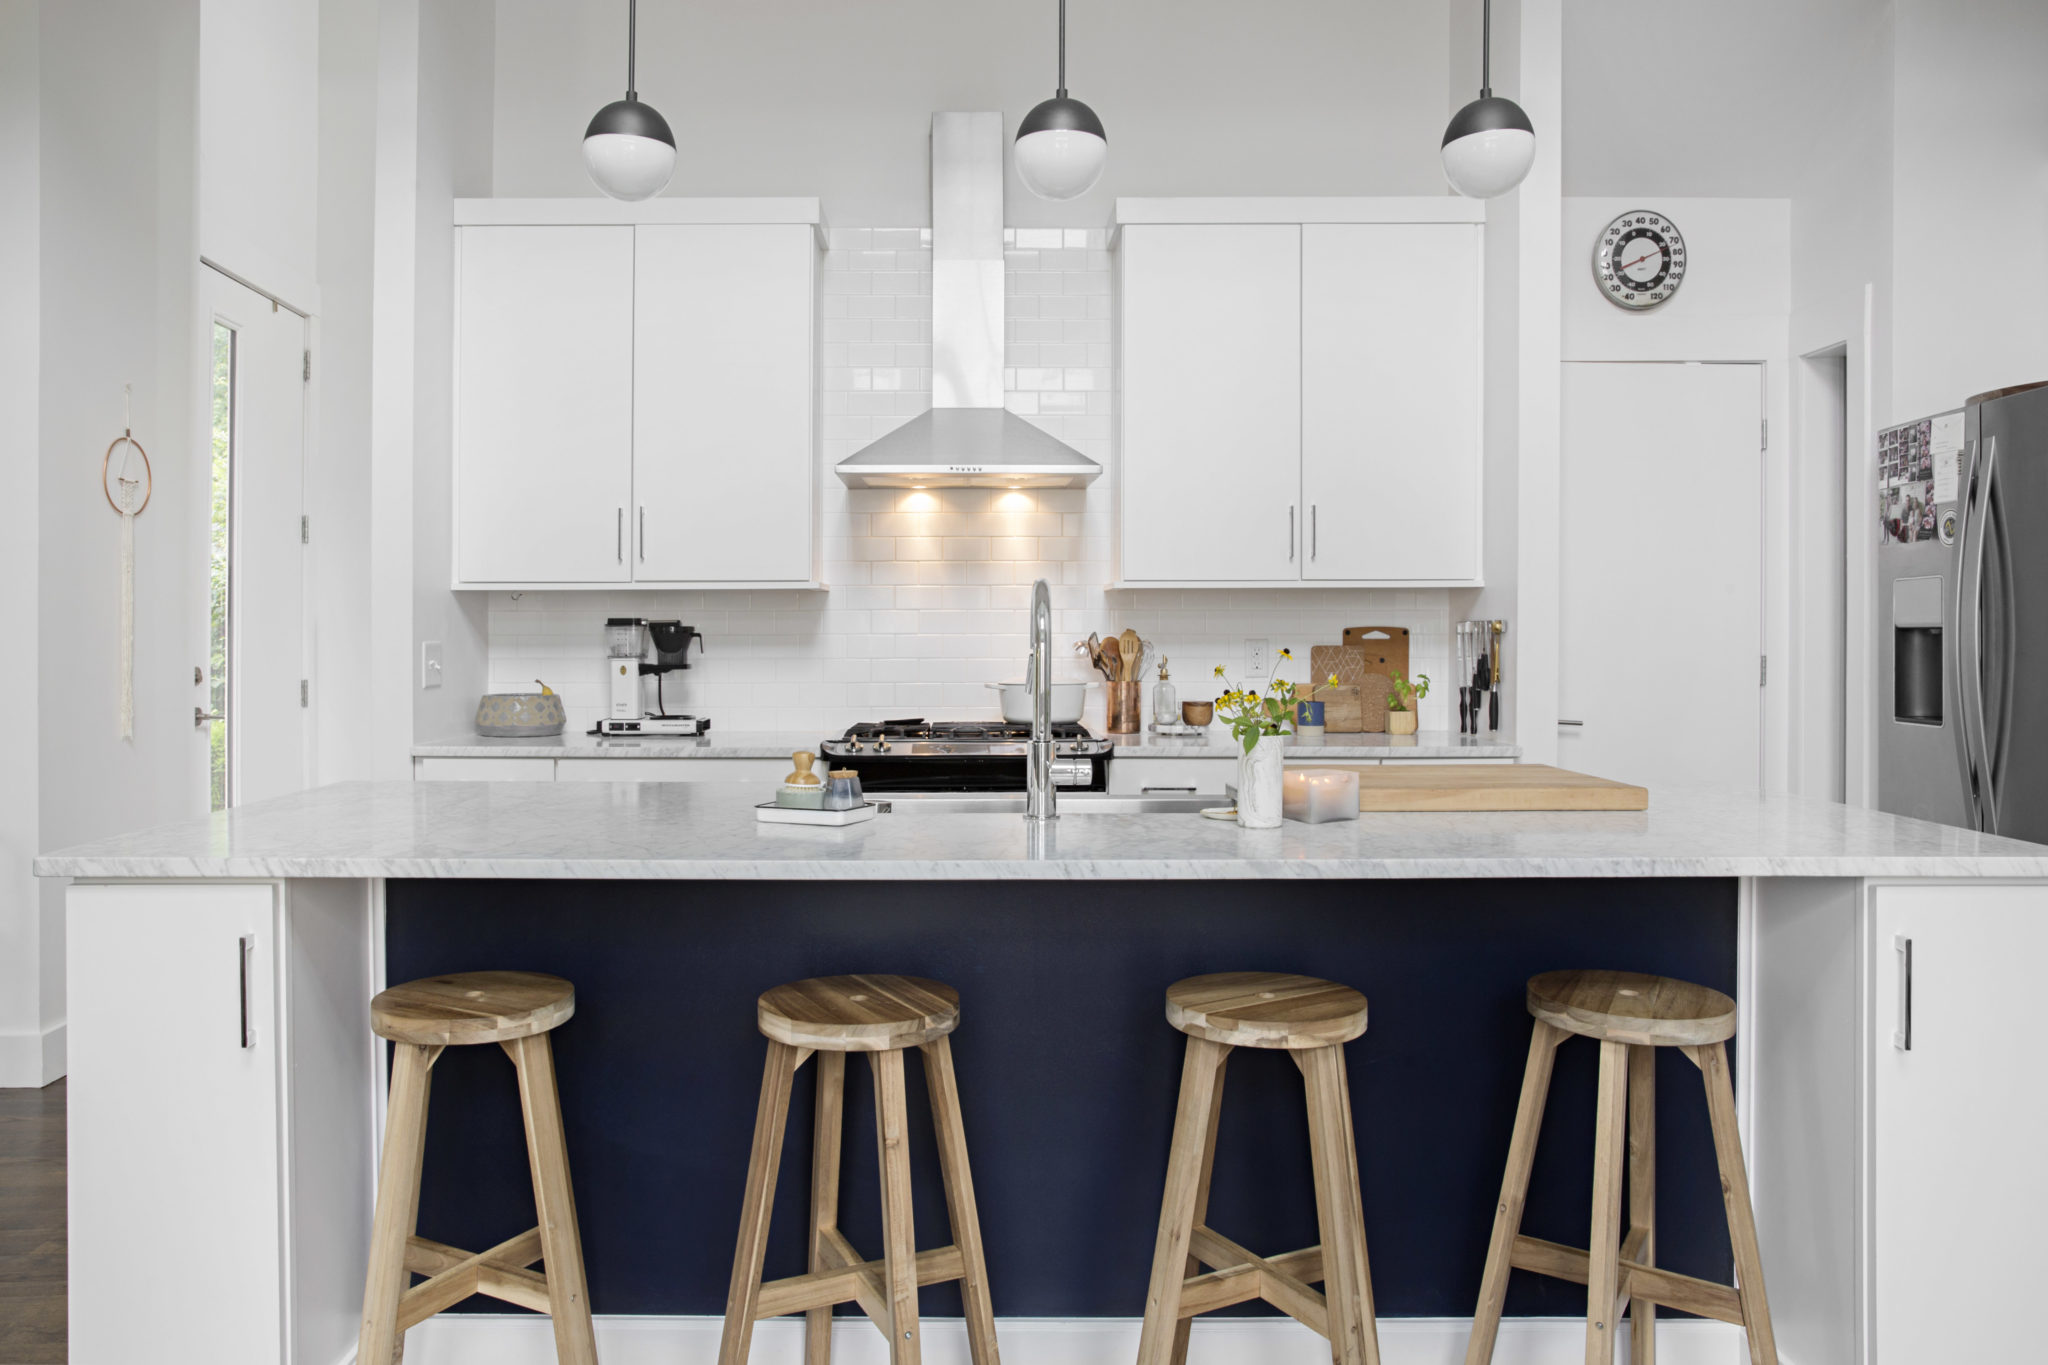 Kitchen Design Trends In 2018 These Are The Top Kitchen Trends For 2018 Hanley Wood Design